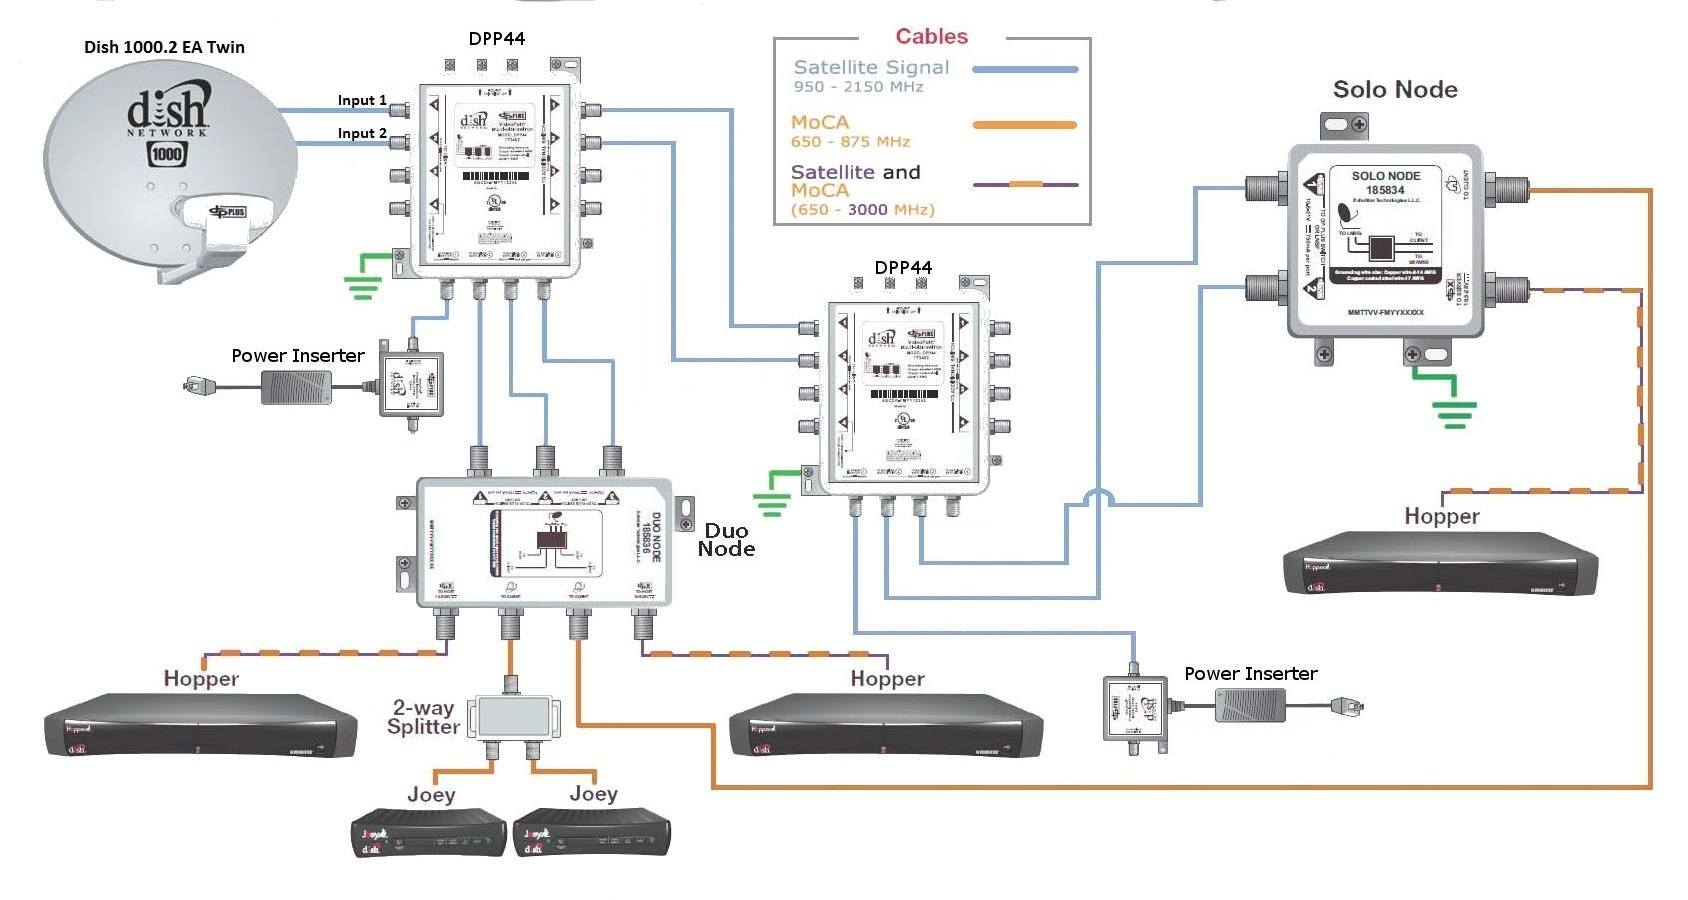 hopper wiring diagram dish network hopper installation \u2022 wiring  at virtualis.co